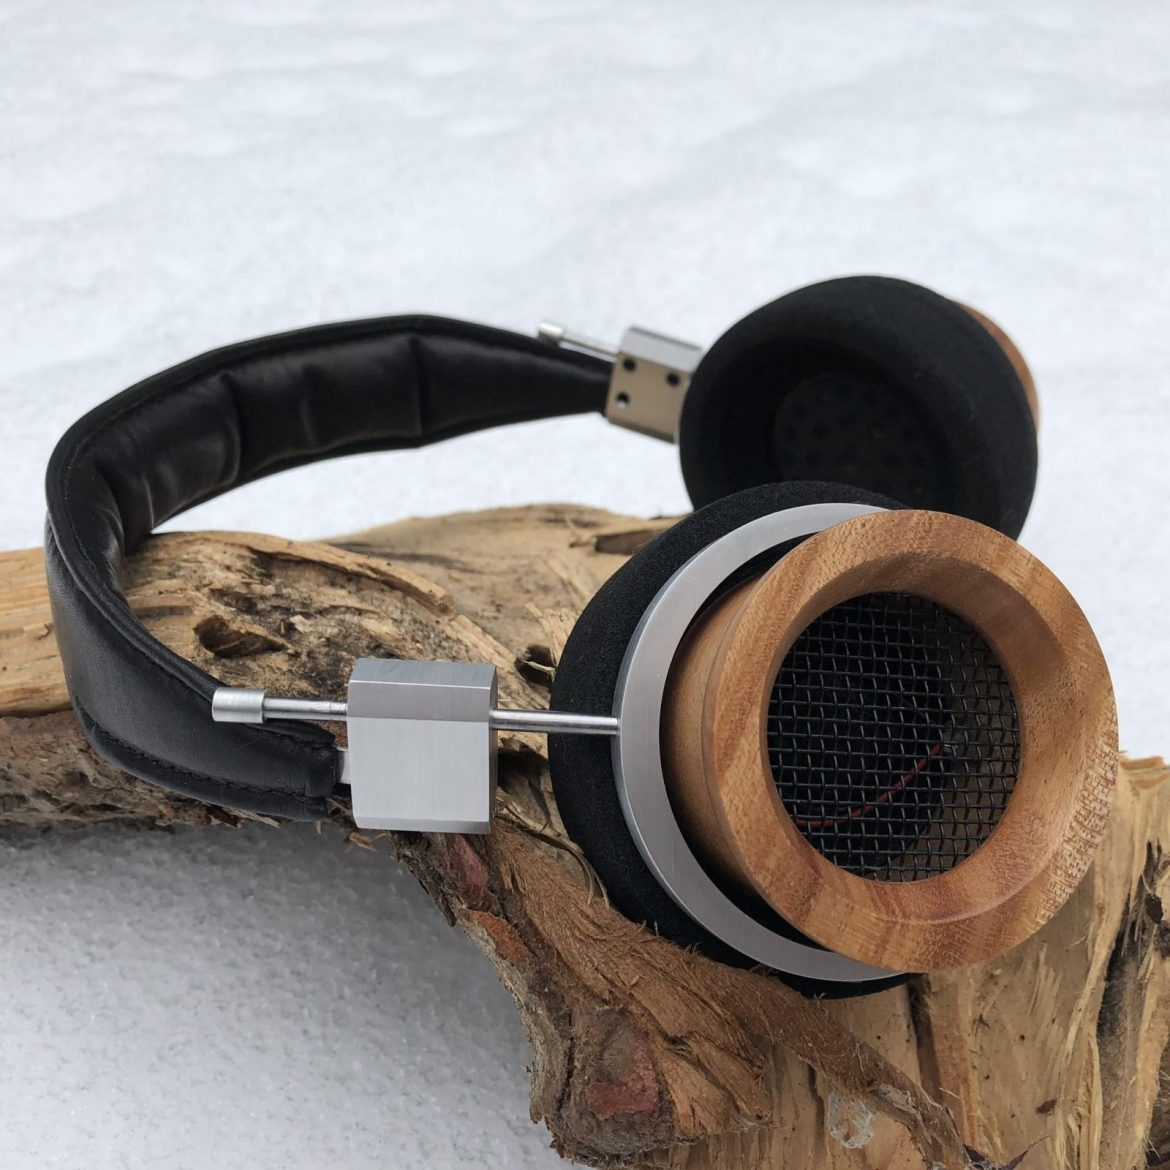 A completed modified Grado build from Shipibo Audio and Symphones